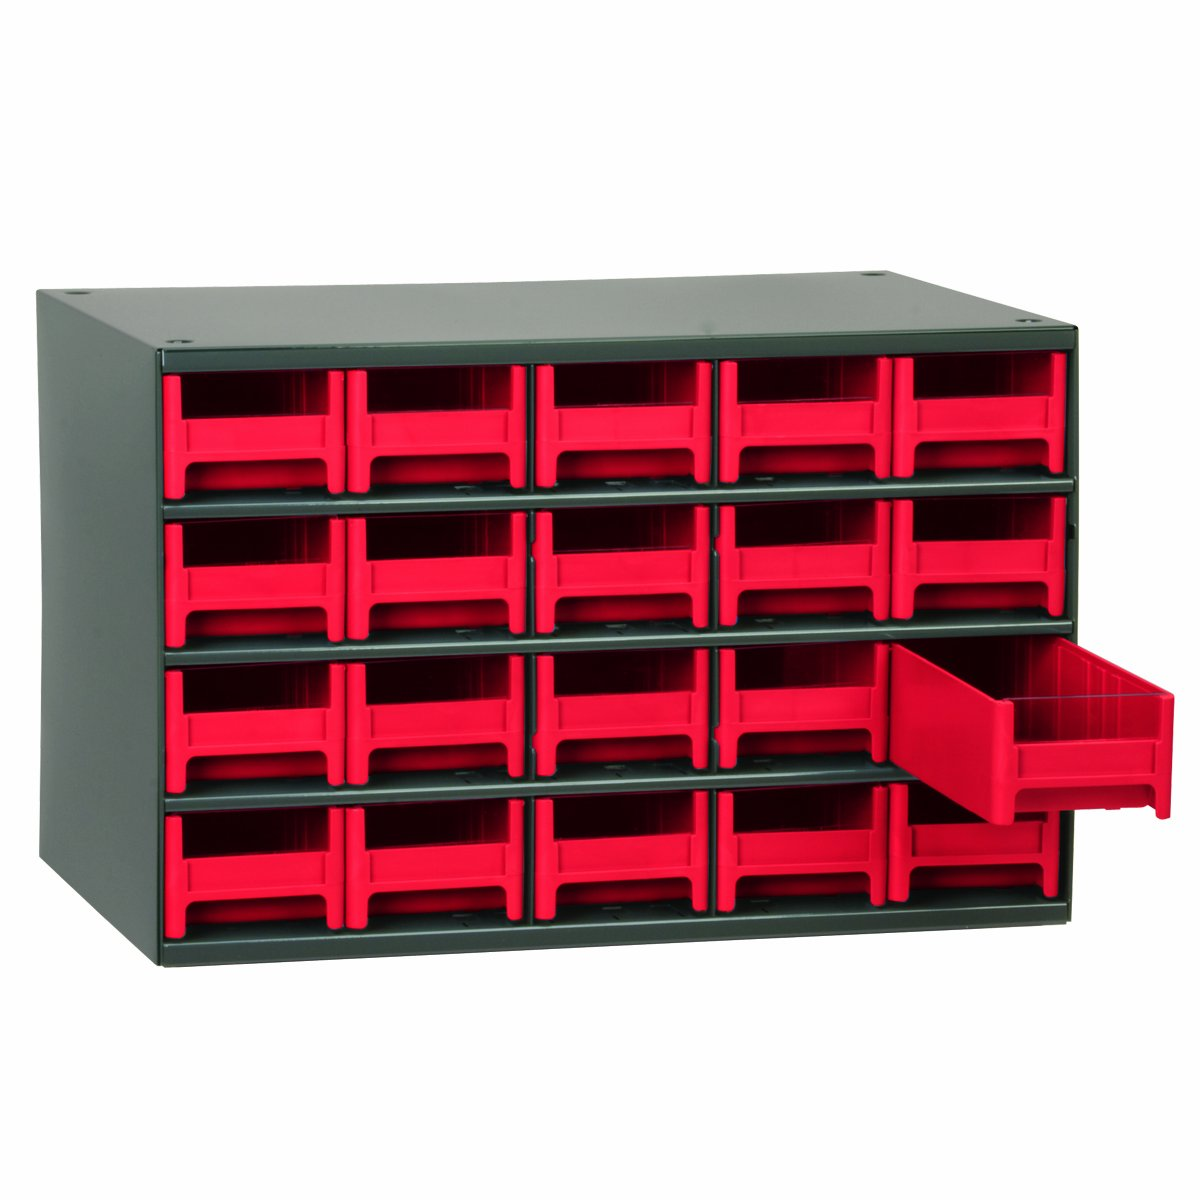 Akro-Mils 19320 17-Inch W by 11-Inch H by 11-Inch D 20 Drawer Steel Parts Storage Hardware and Craft Cabinet, Red Drawers